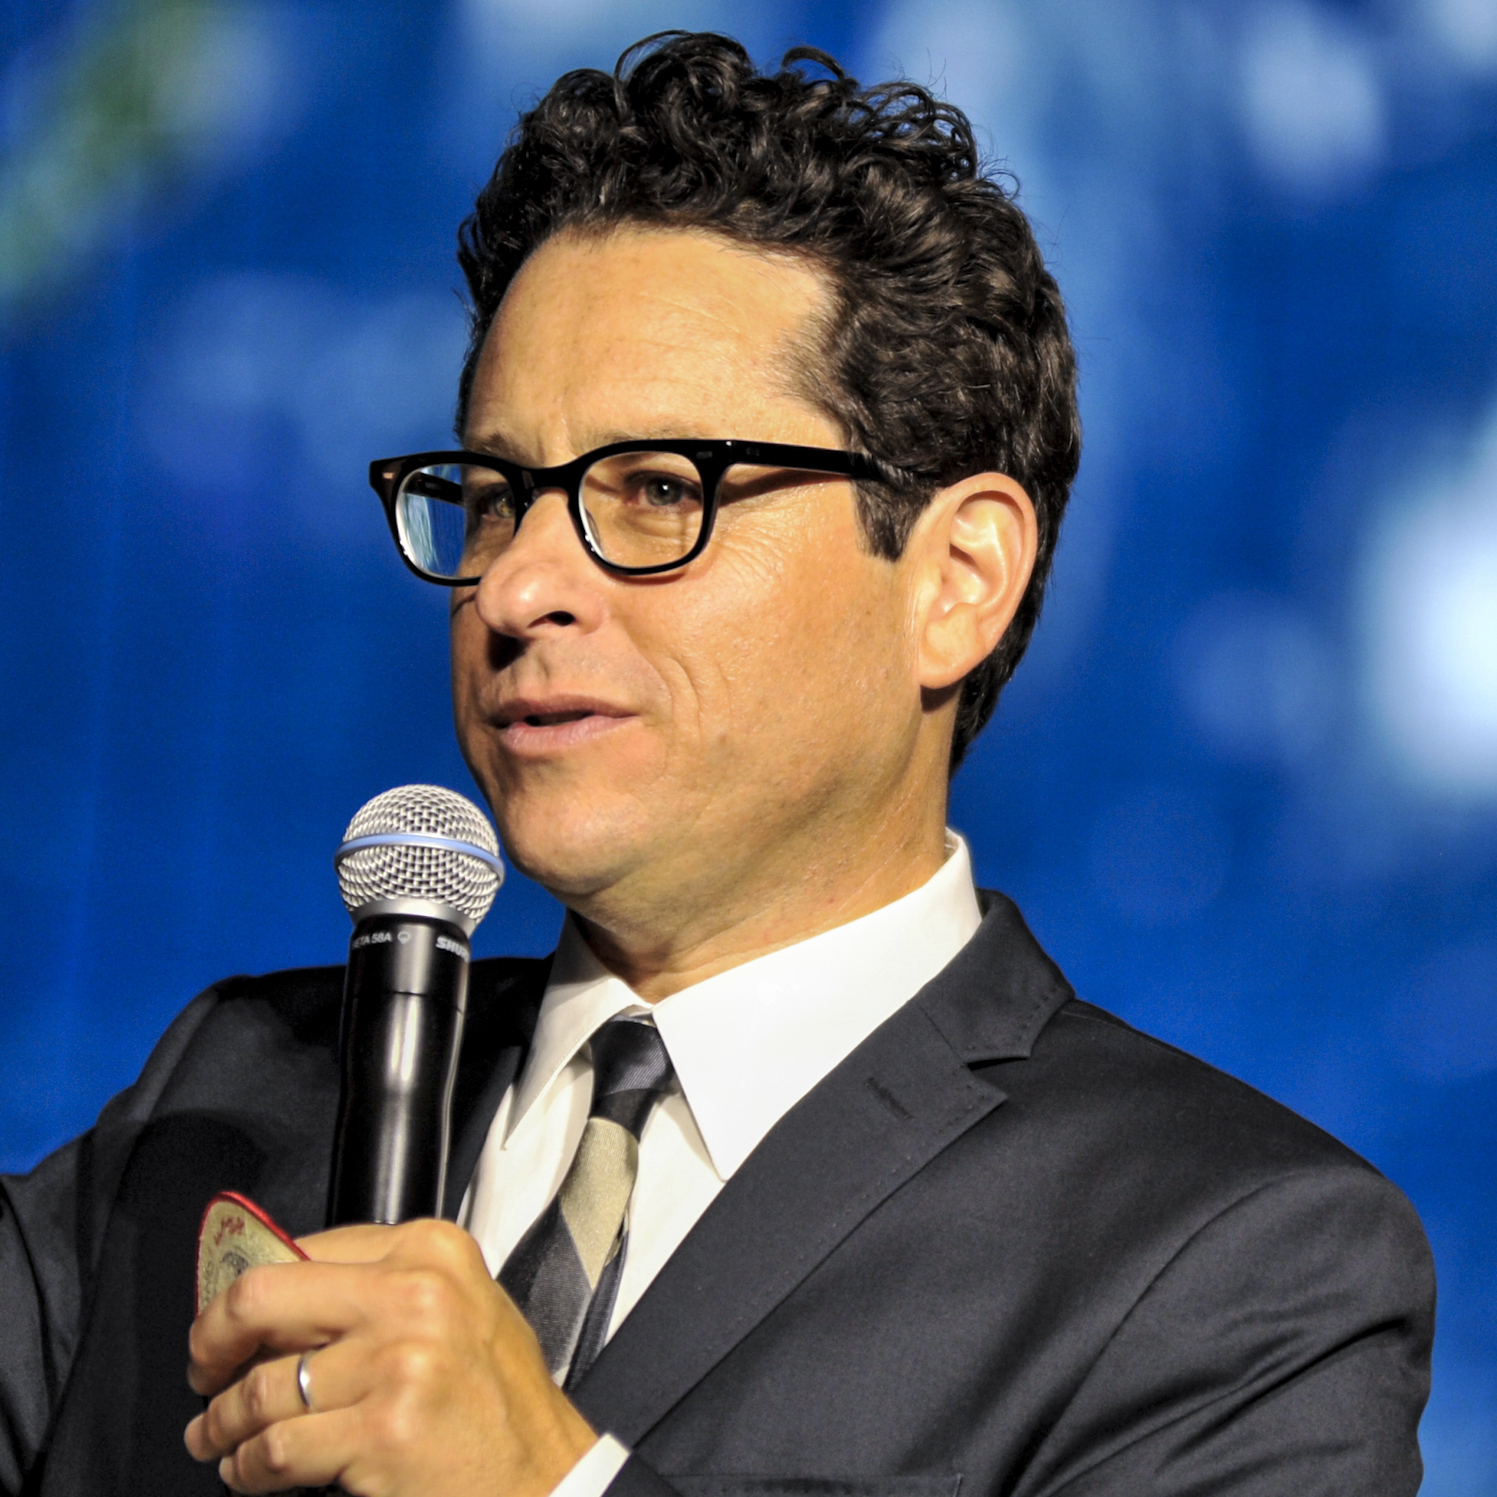 J.J. Abrams attends an event for his recent film, Star Trek: Into Darkness, in Tokyo in August.